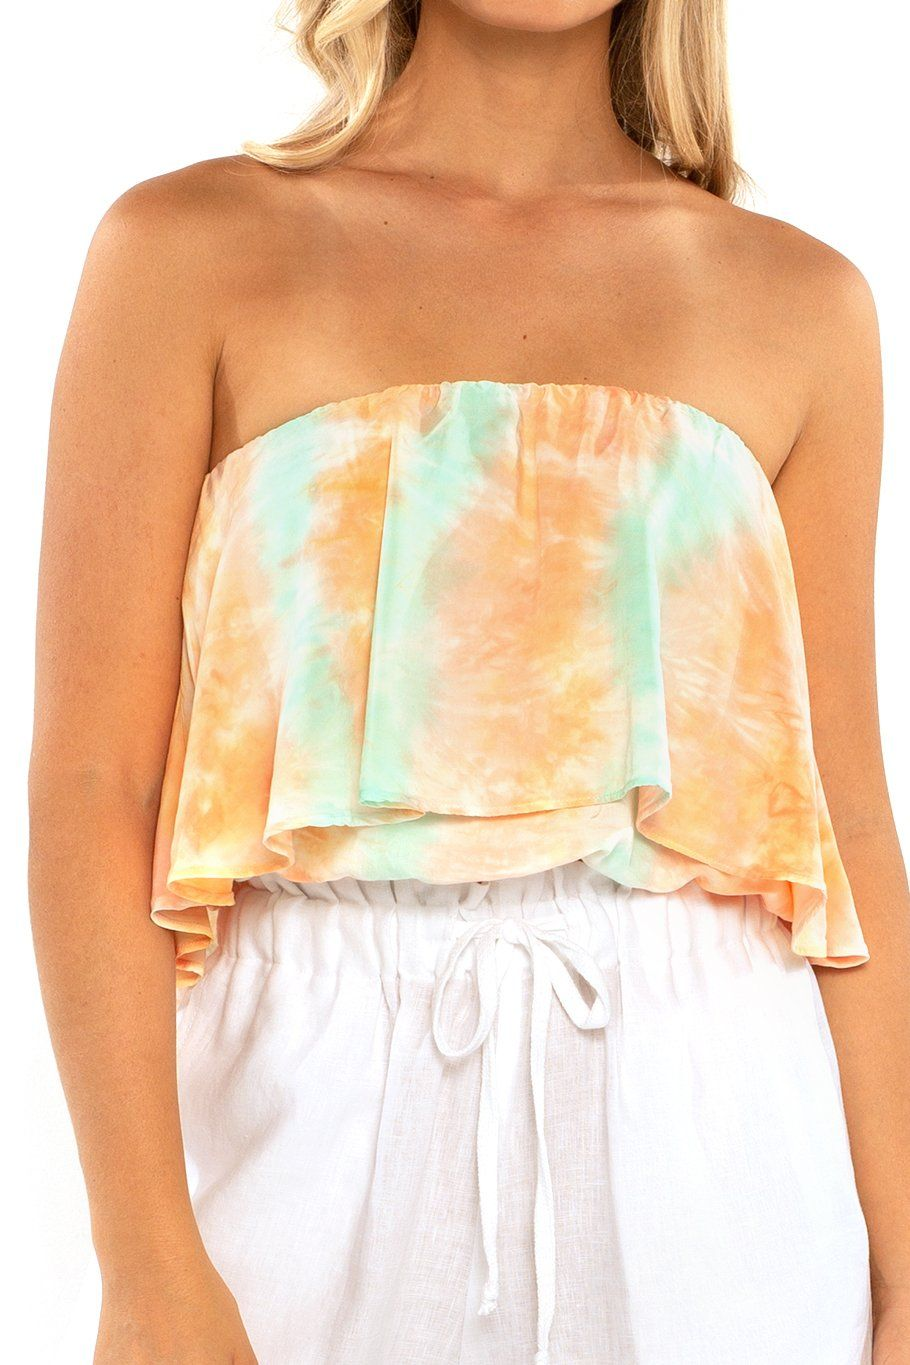 Huntington Layered Top - Sunset Dye